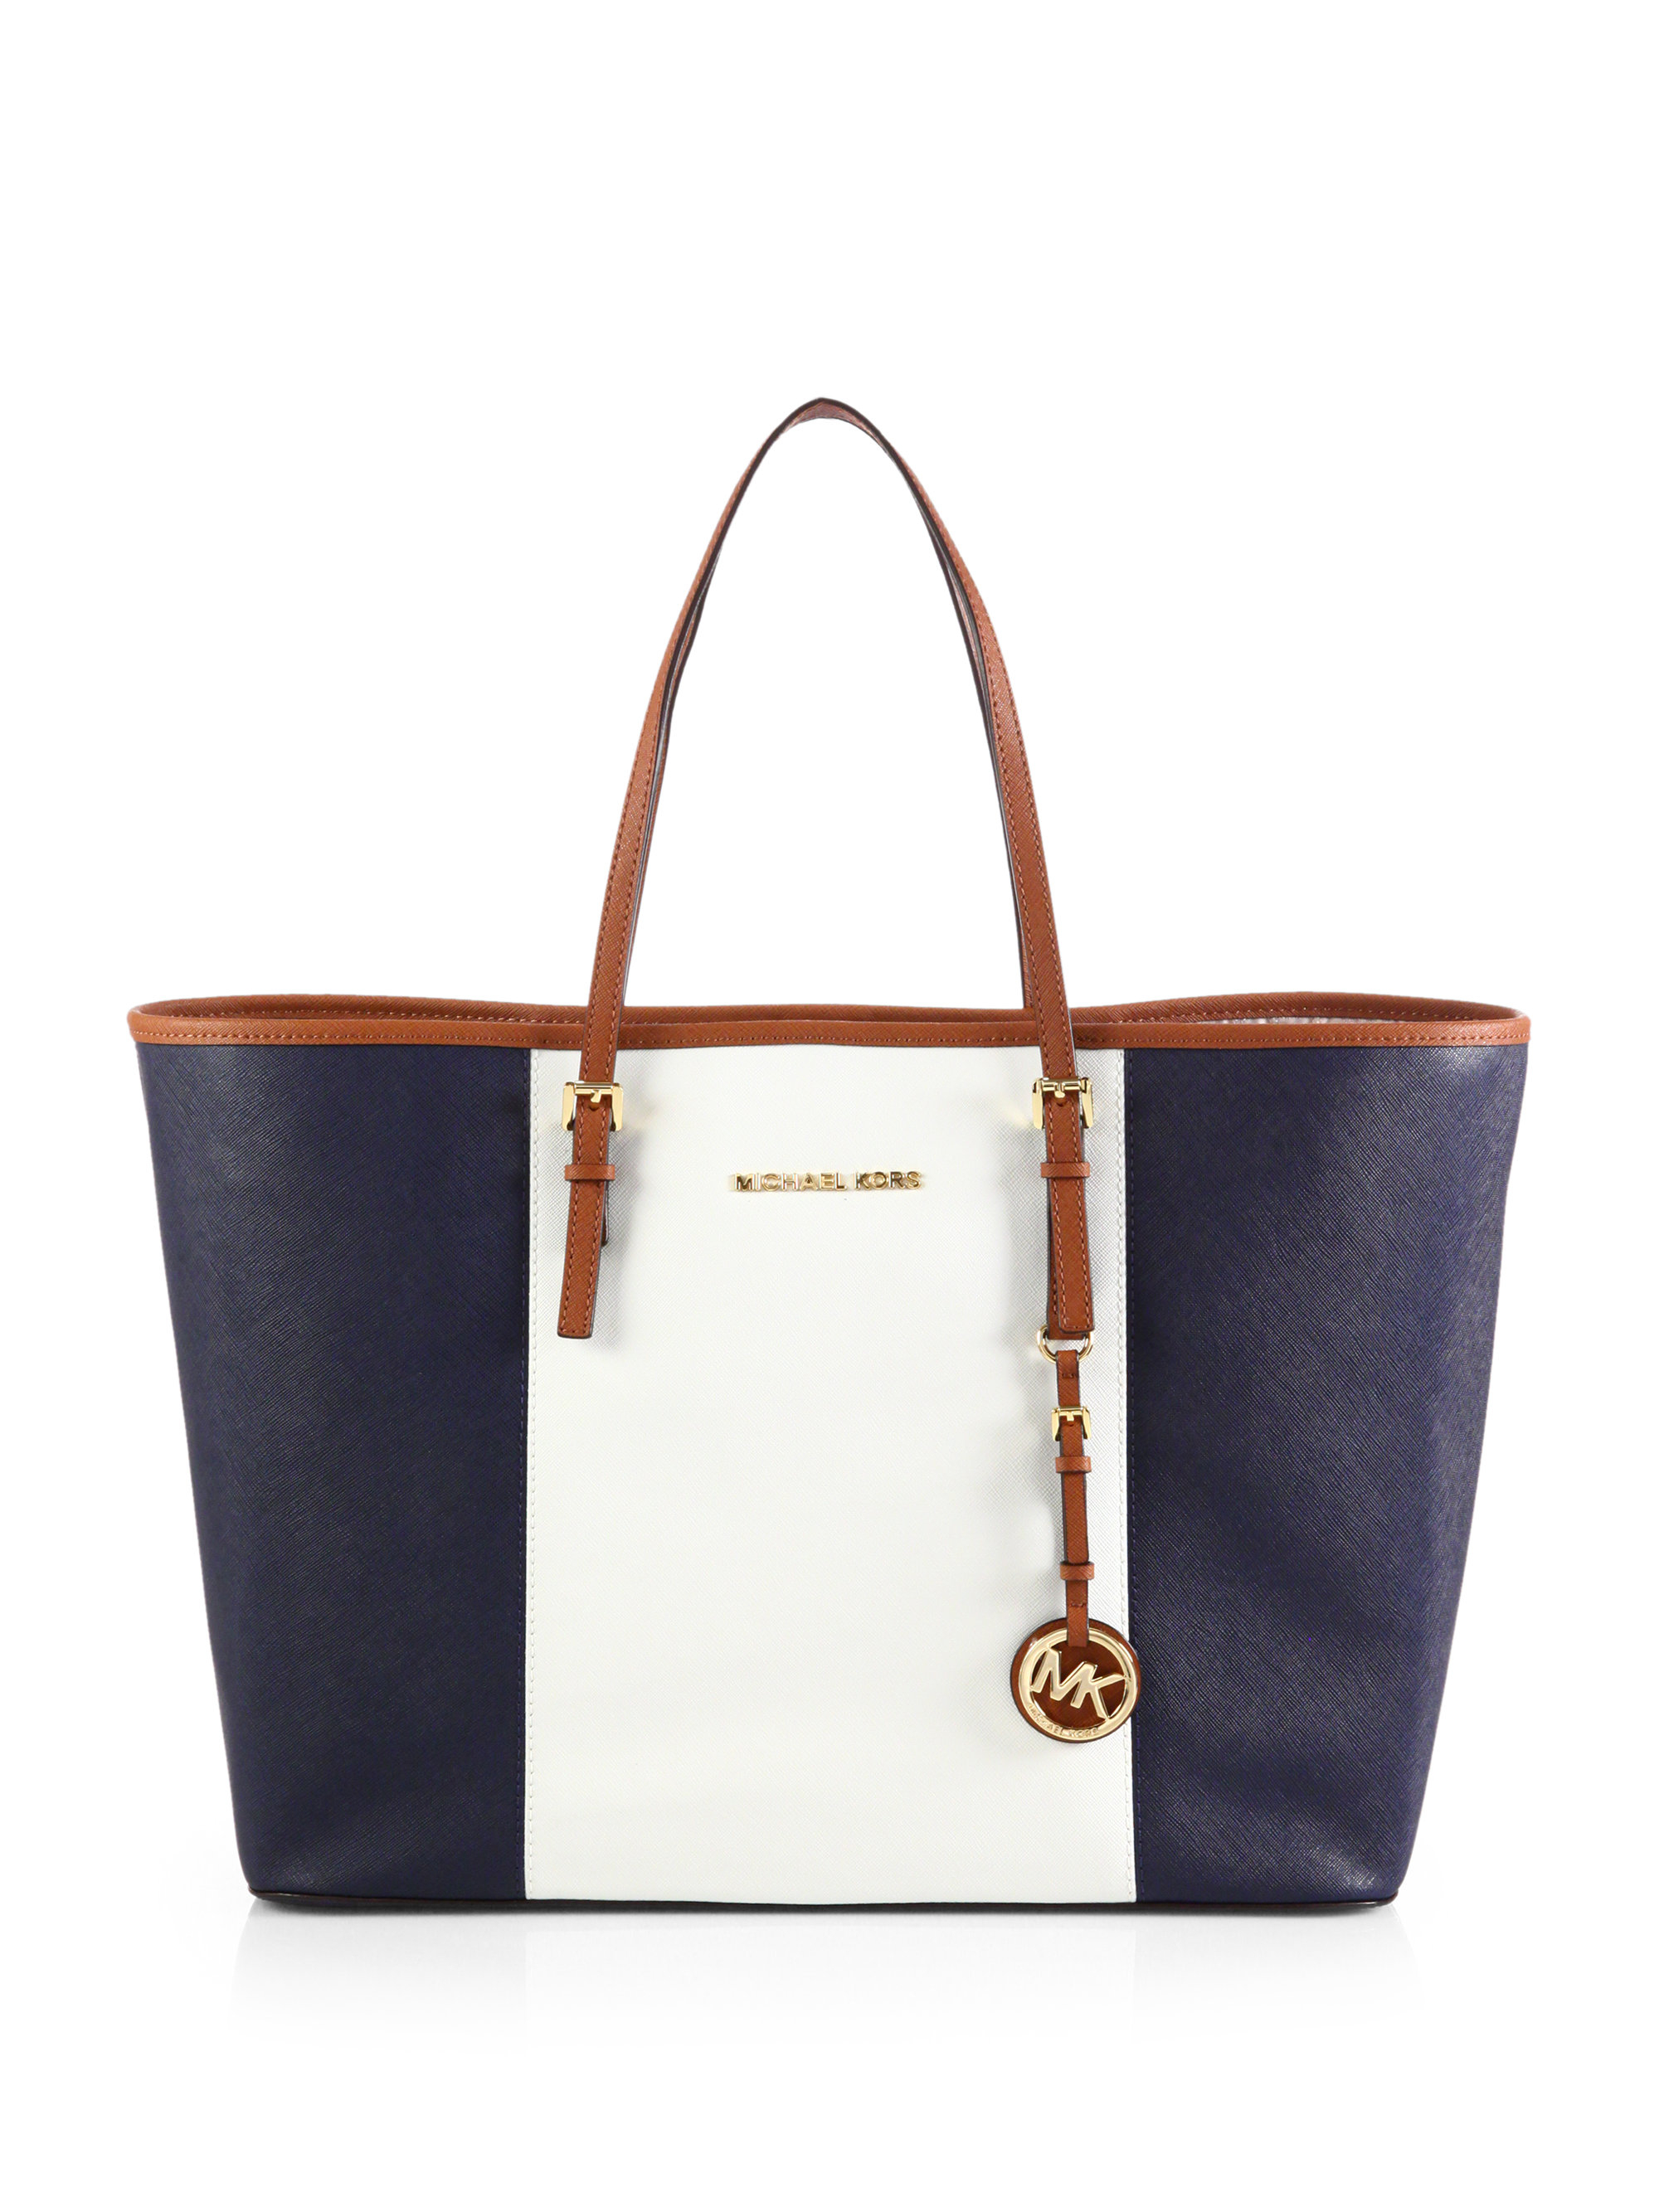 Michael michael kors Colorblock Medium Travel Tote in Blue | Lyst